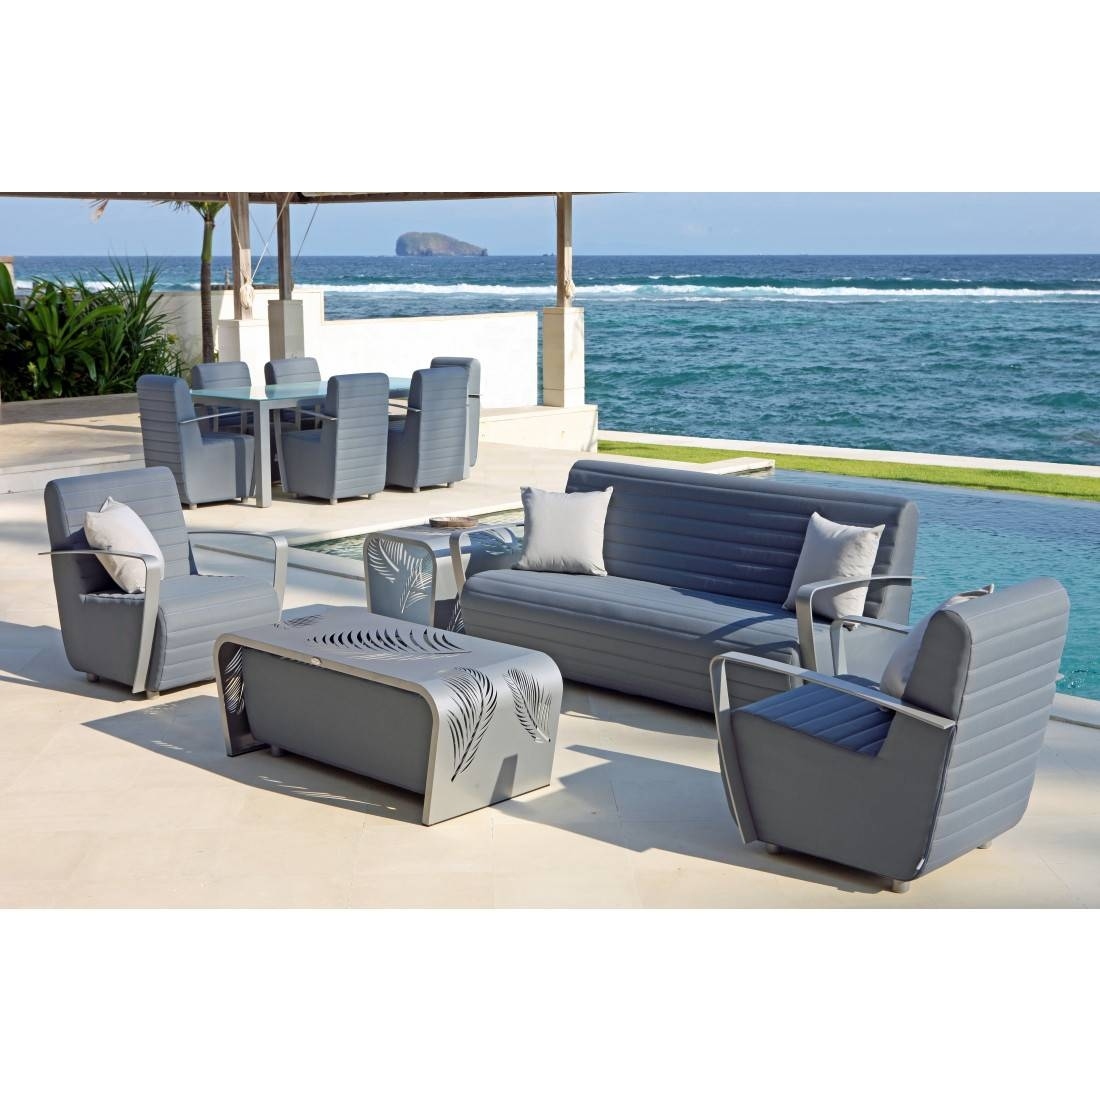 Outdoor Sofas – Axis Sofaskyline With Skyline Sofas (View 4 of 15)